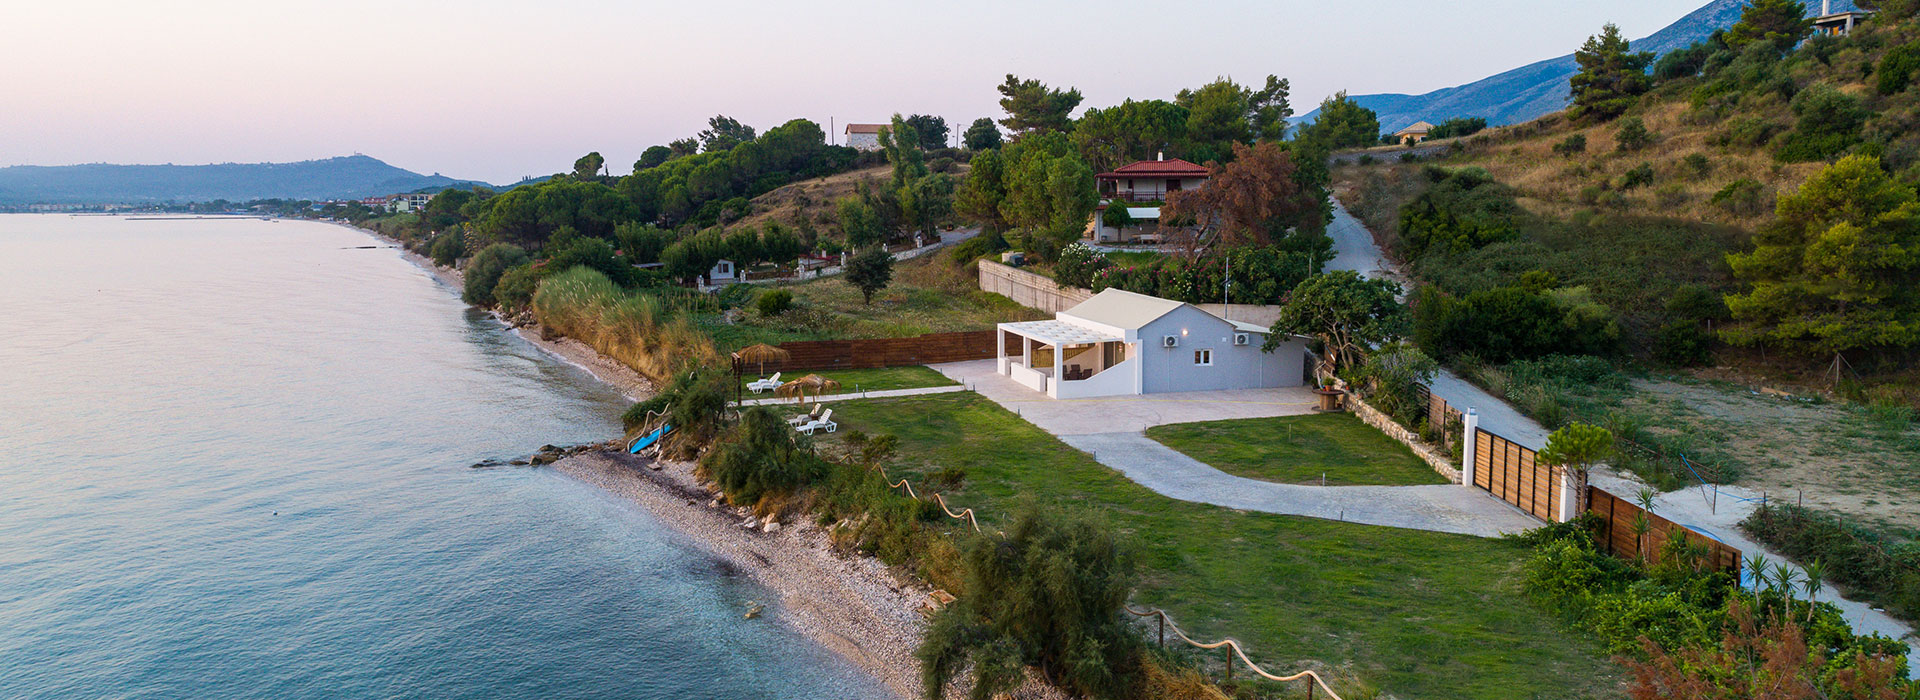 potamakia seaside suites alykes zakynthos